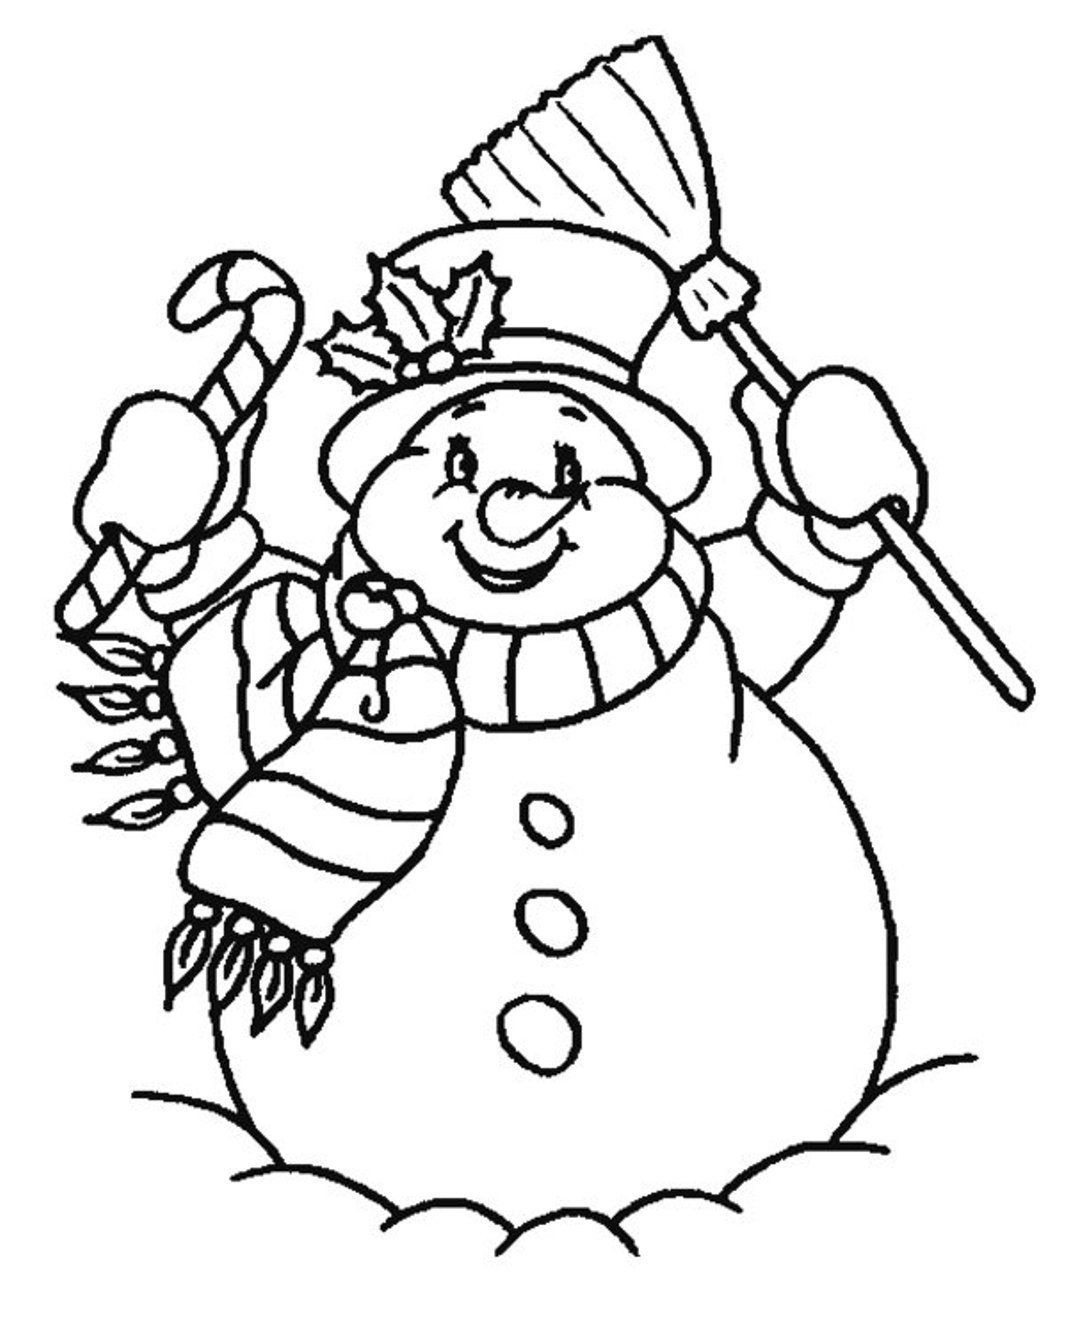 Printable Free Snowman Coloring Pages For Kids